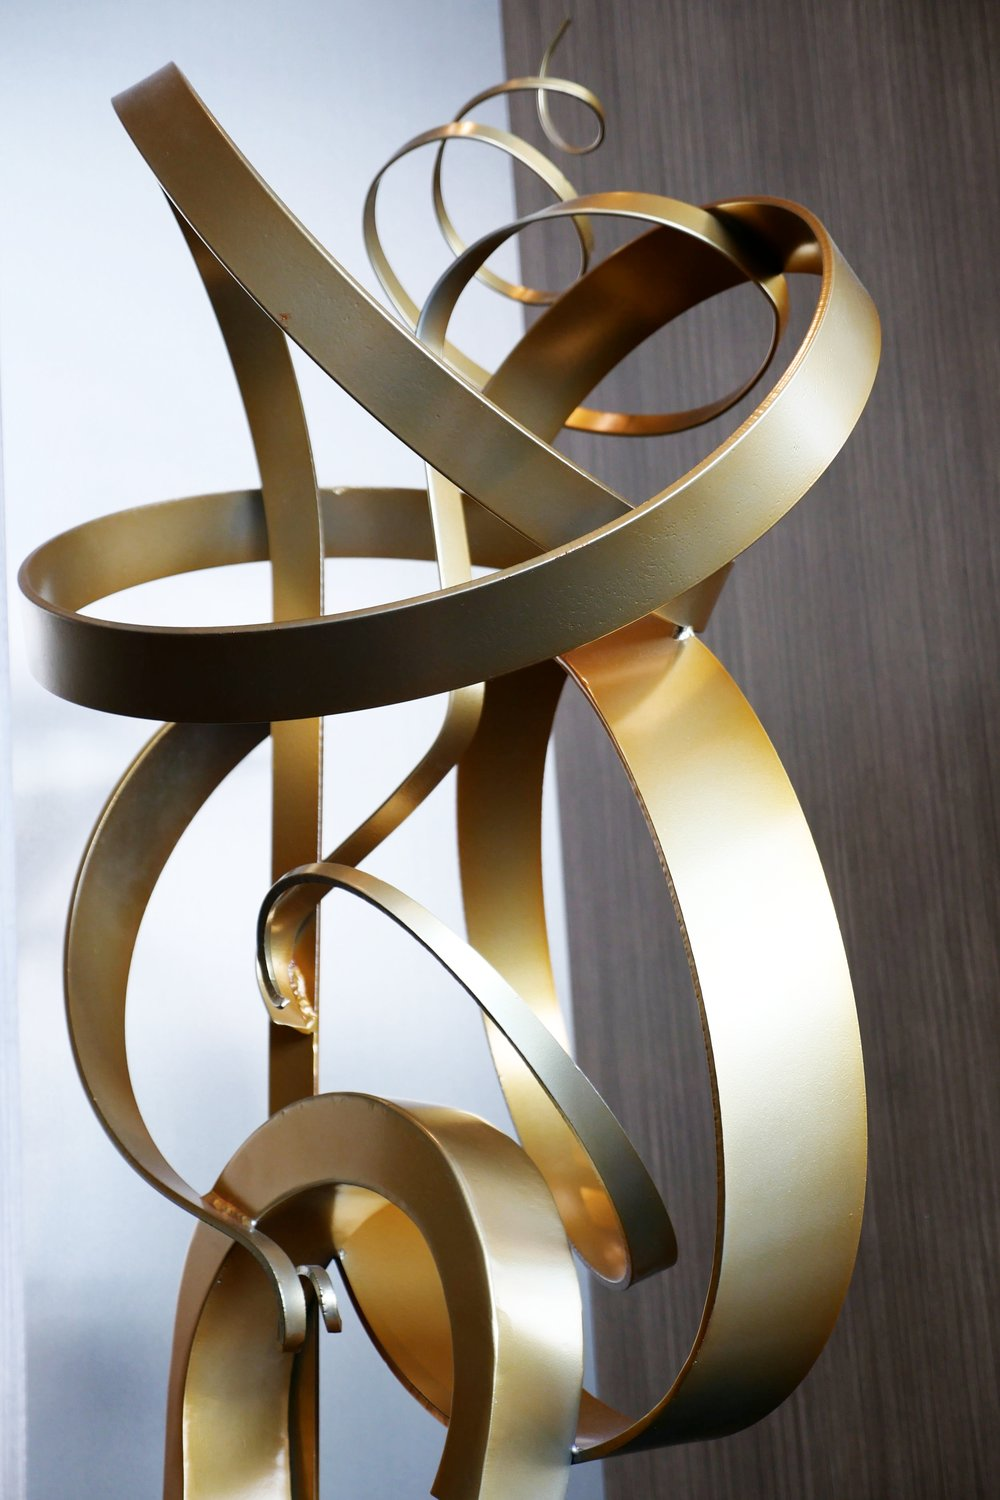 Abstract sculptures by Kalisher in the prefunction area mimic the fluid movement of the sport.